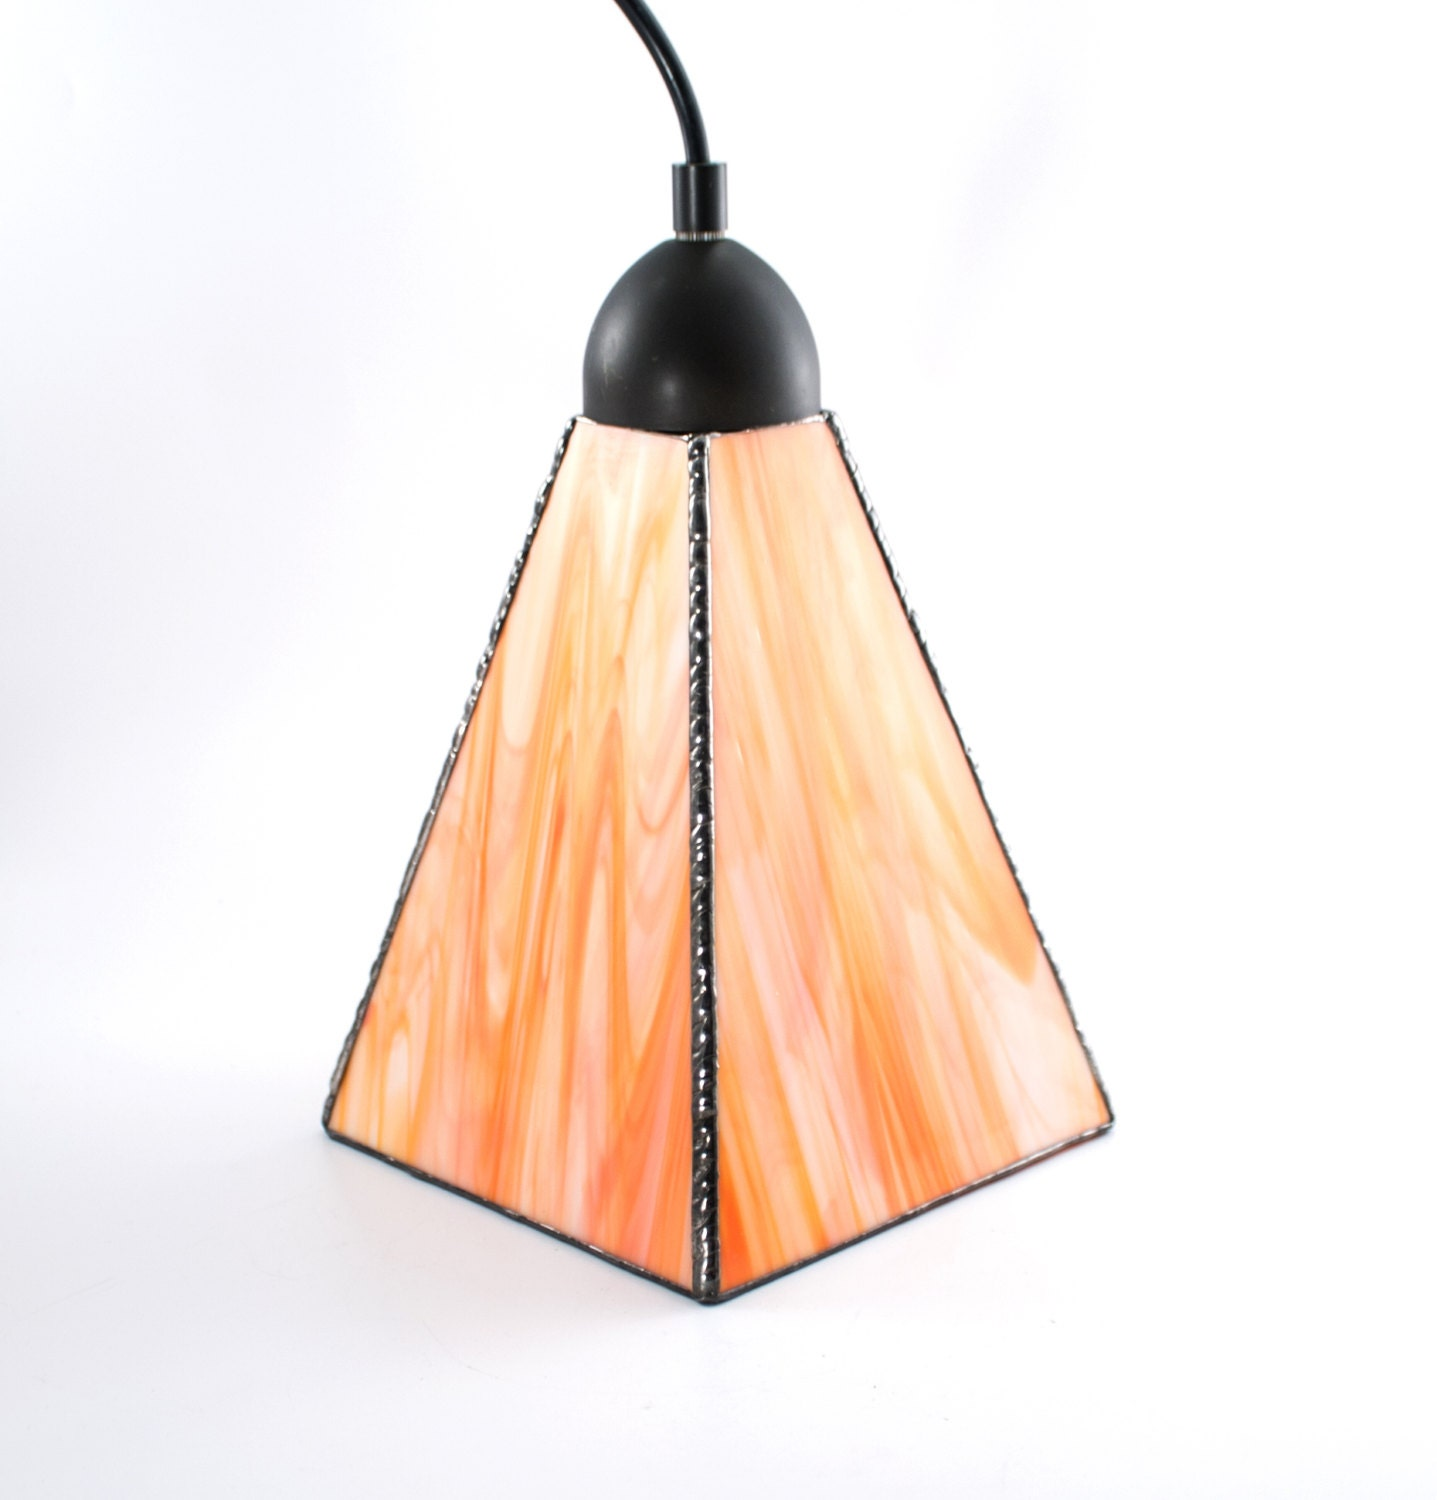 Stained Glass Pendant Lighting Glass Shade Kitchen Island